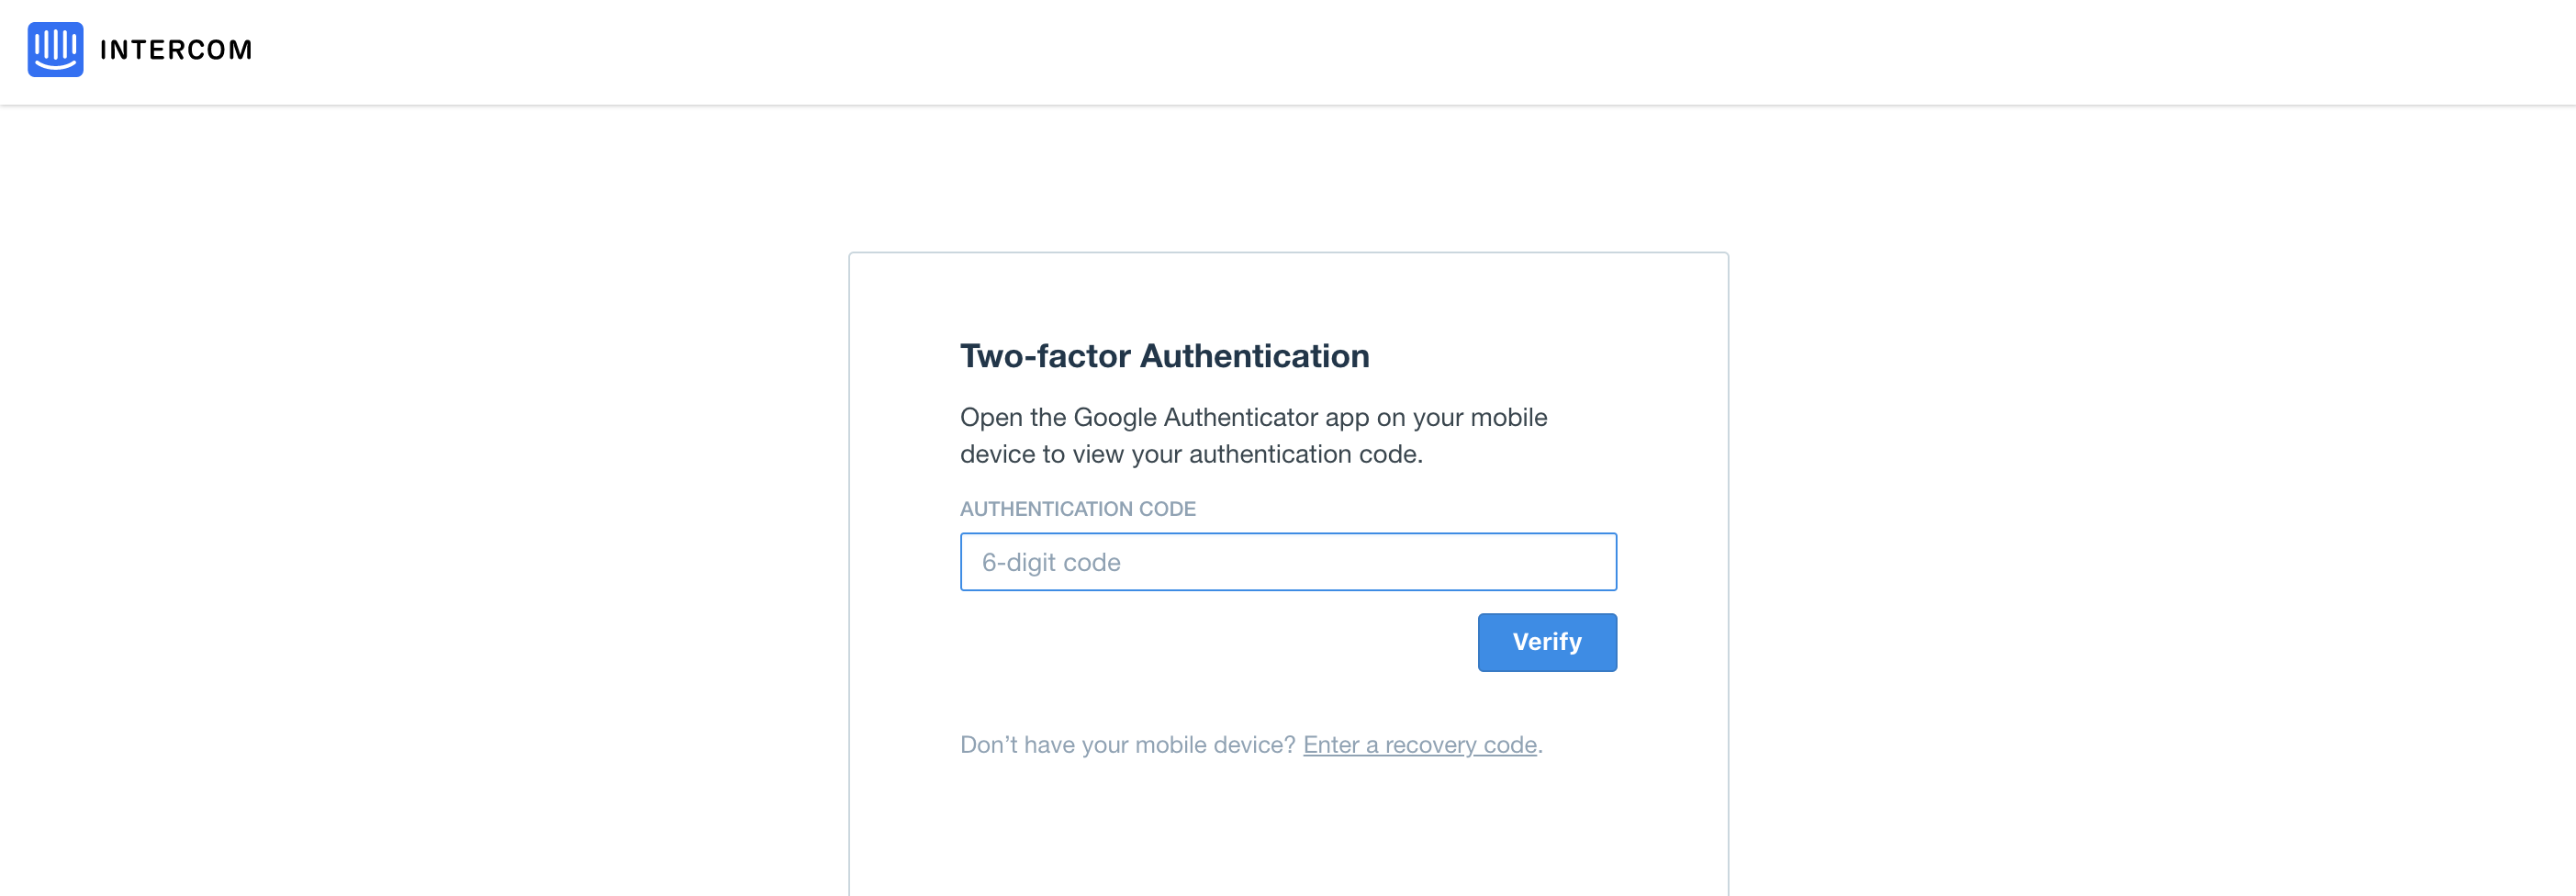 verify-two-factor-authentication-Intercom.png